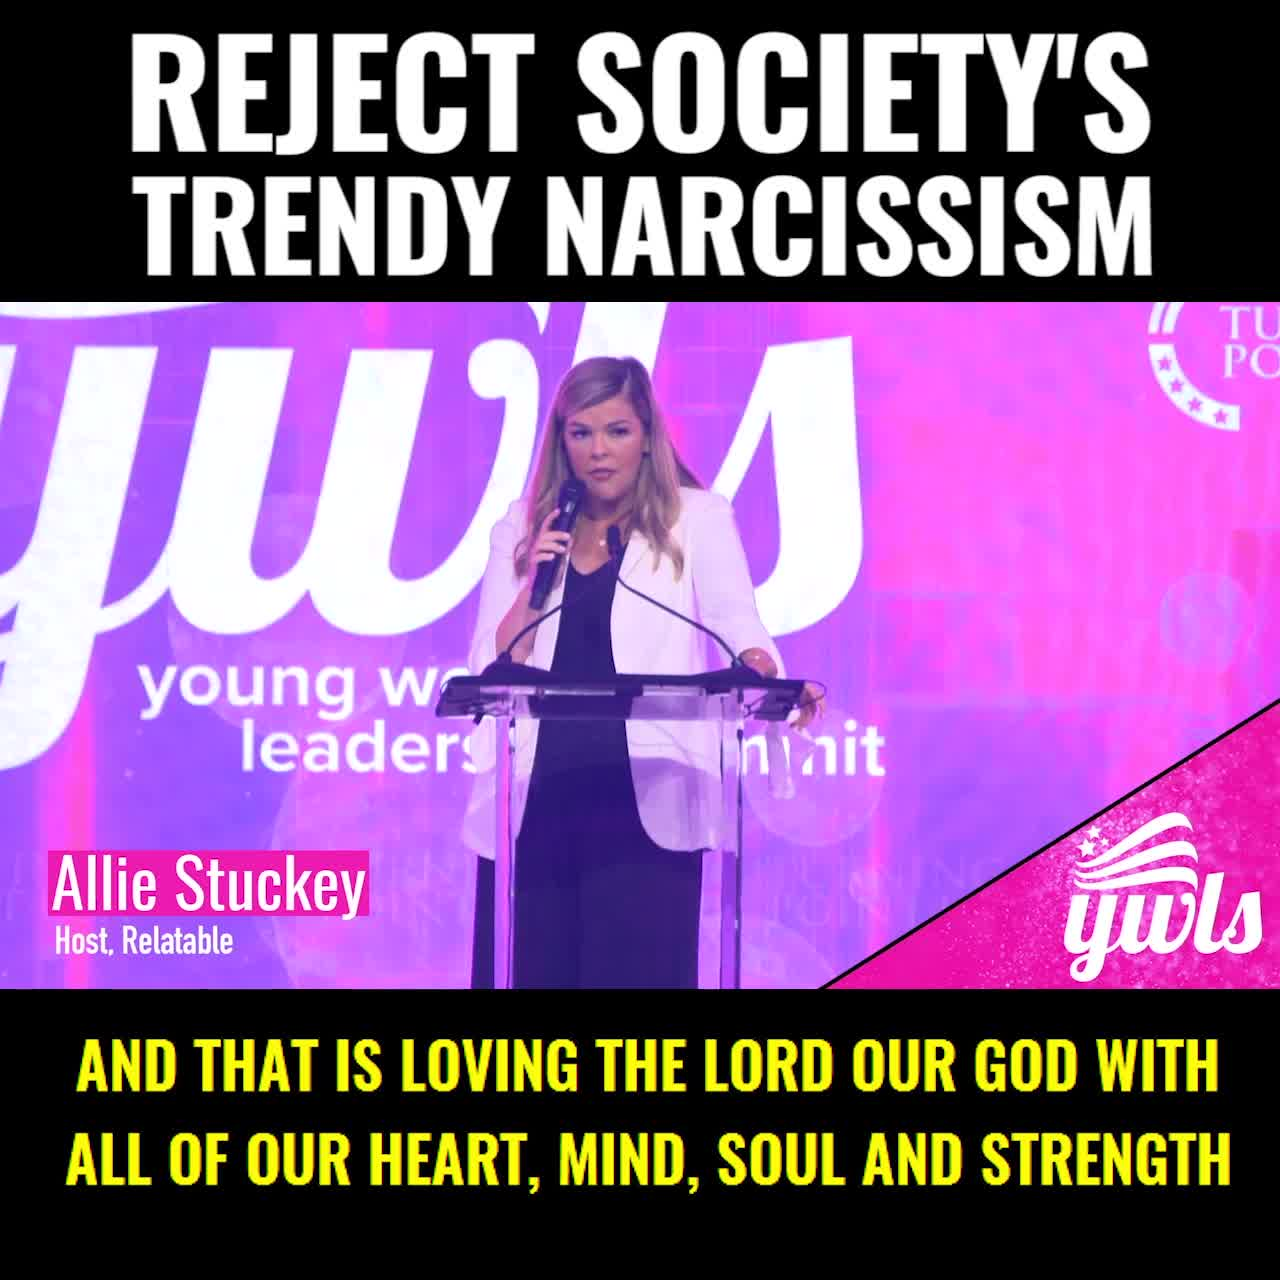 Reject Society's Trendy Narcissism